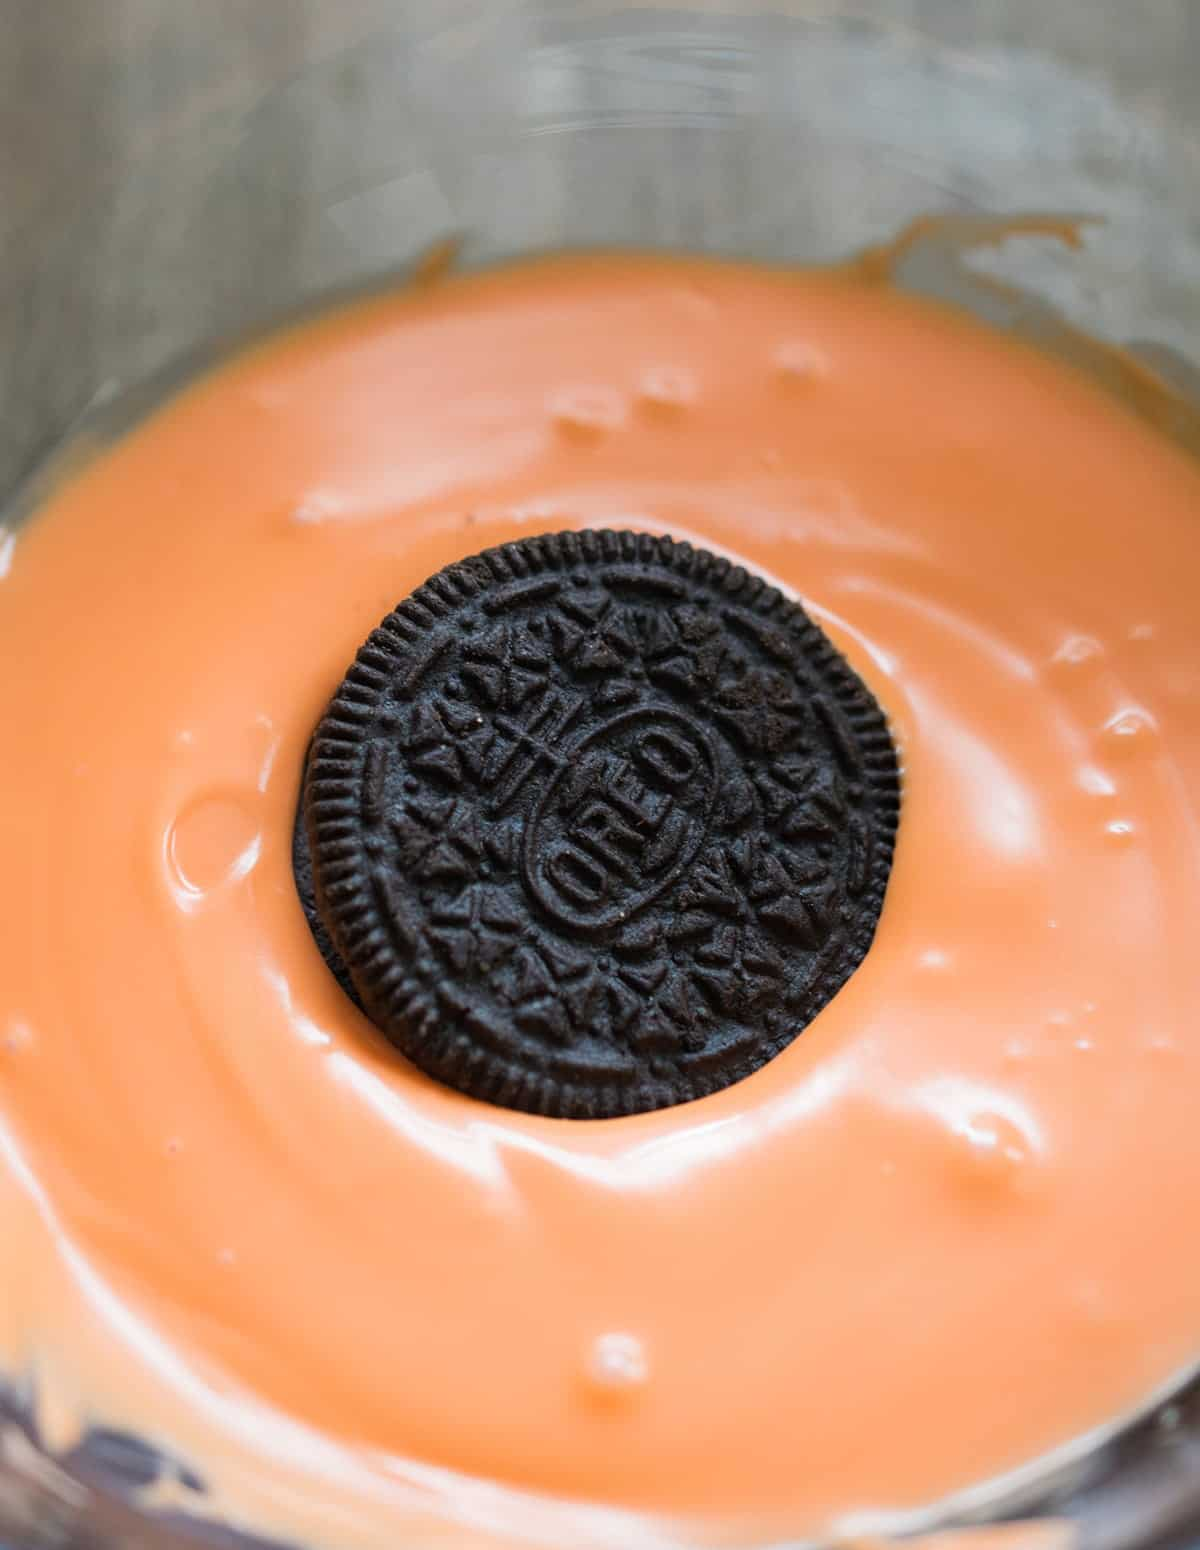 Oreo in orange tinted white chocolate in glass bowl for making basketball cookies.